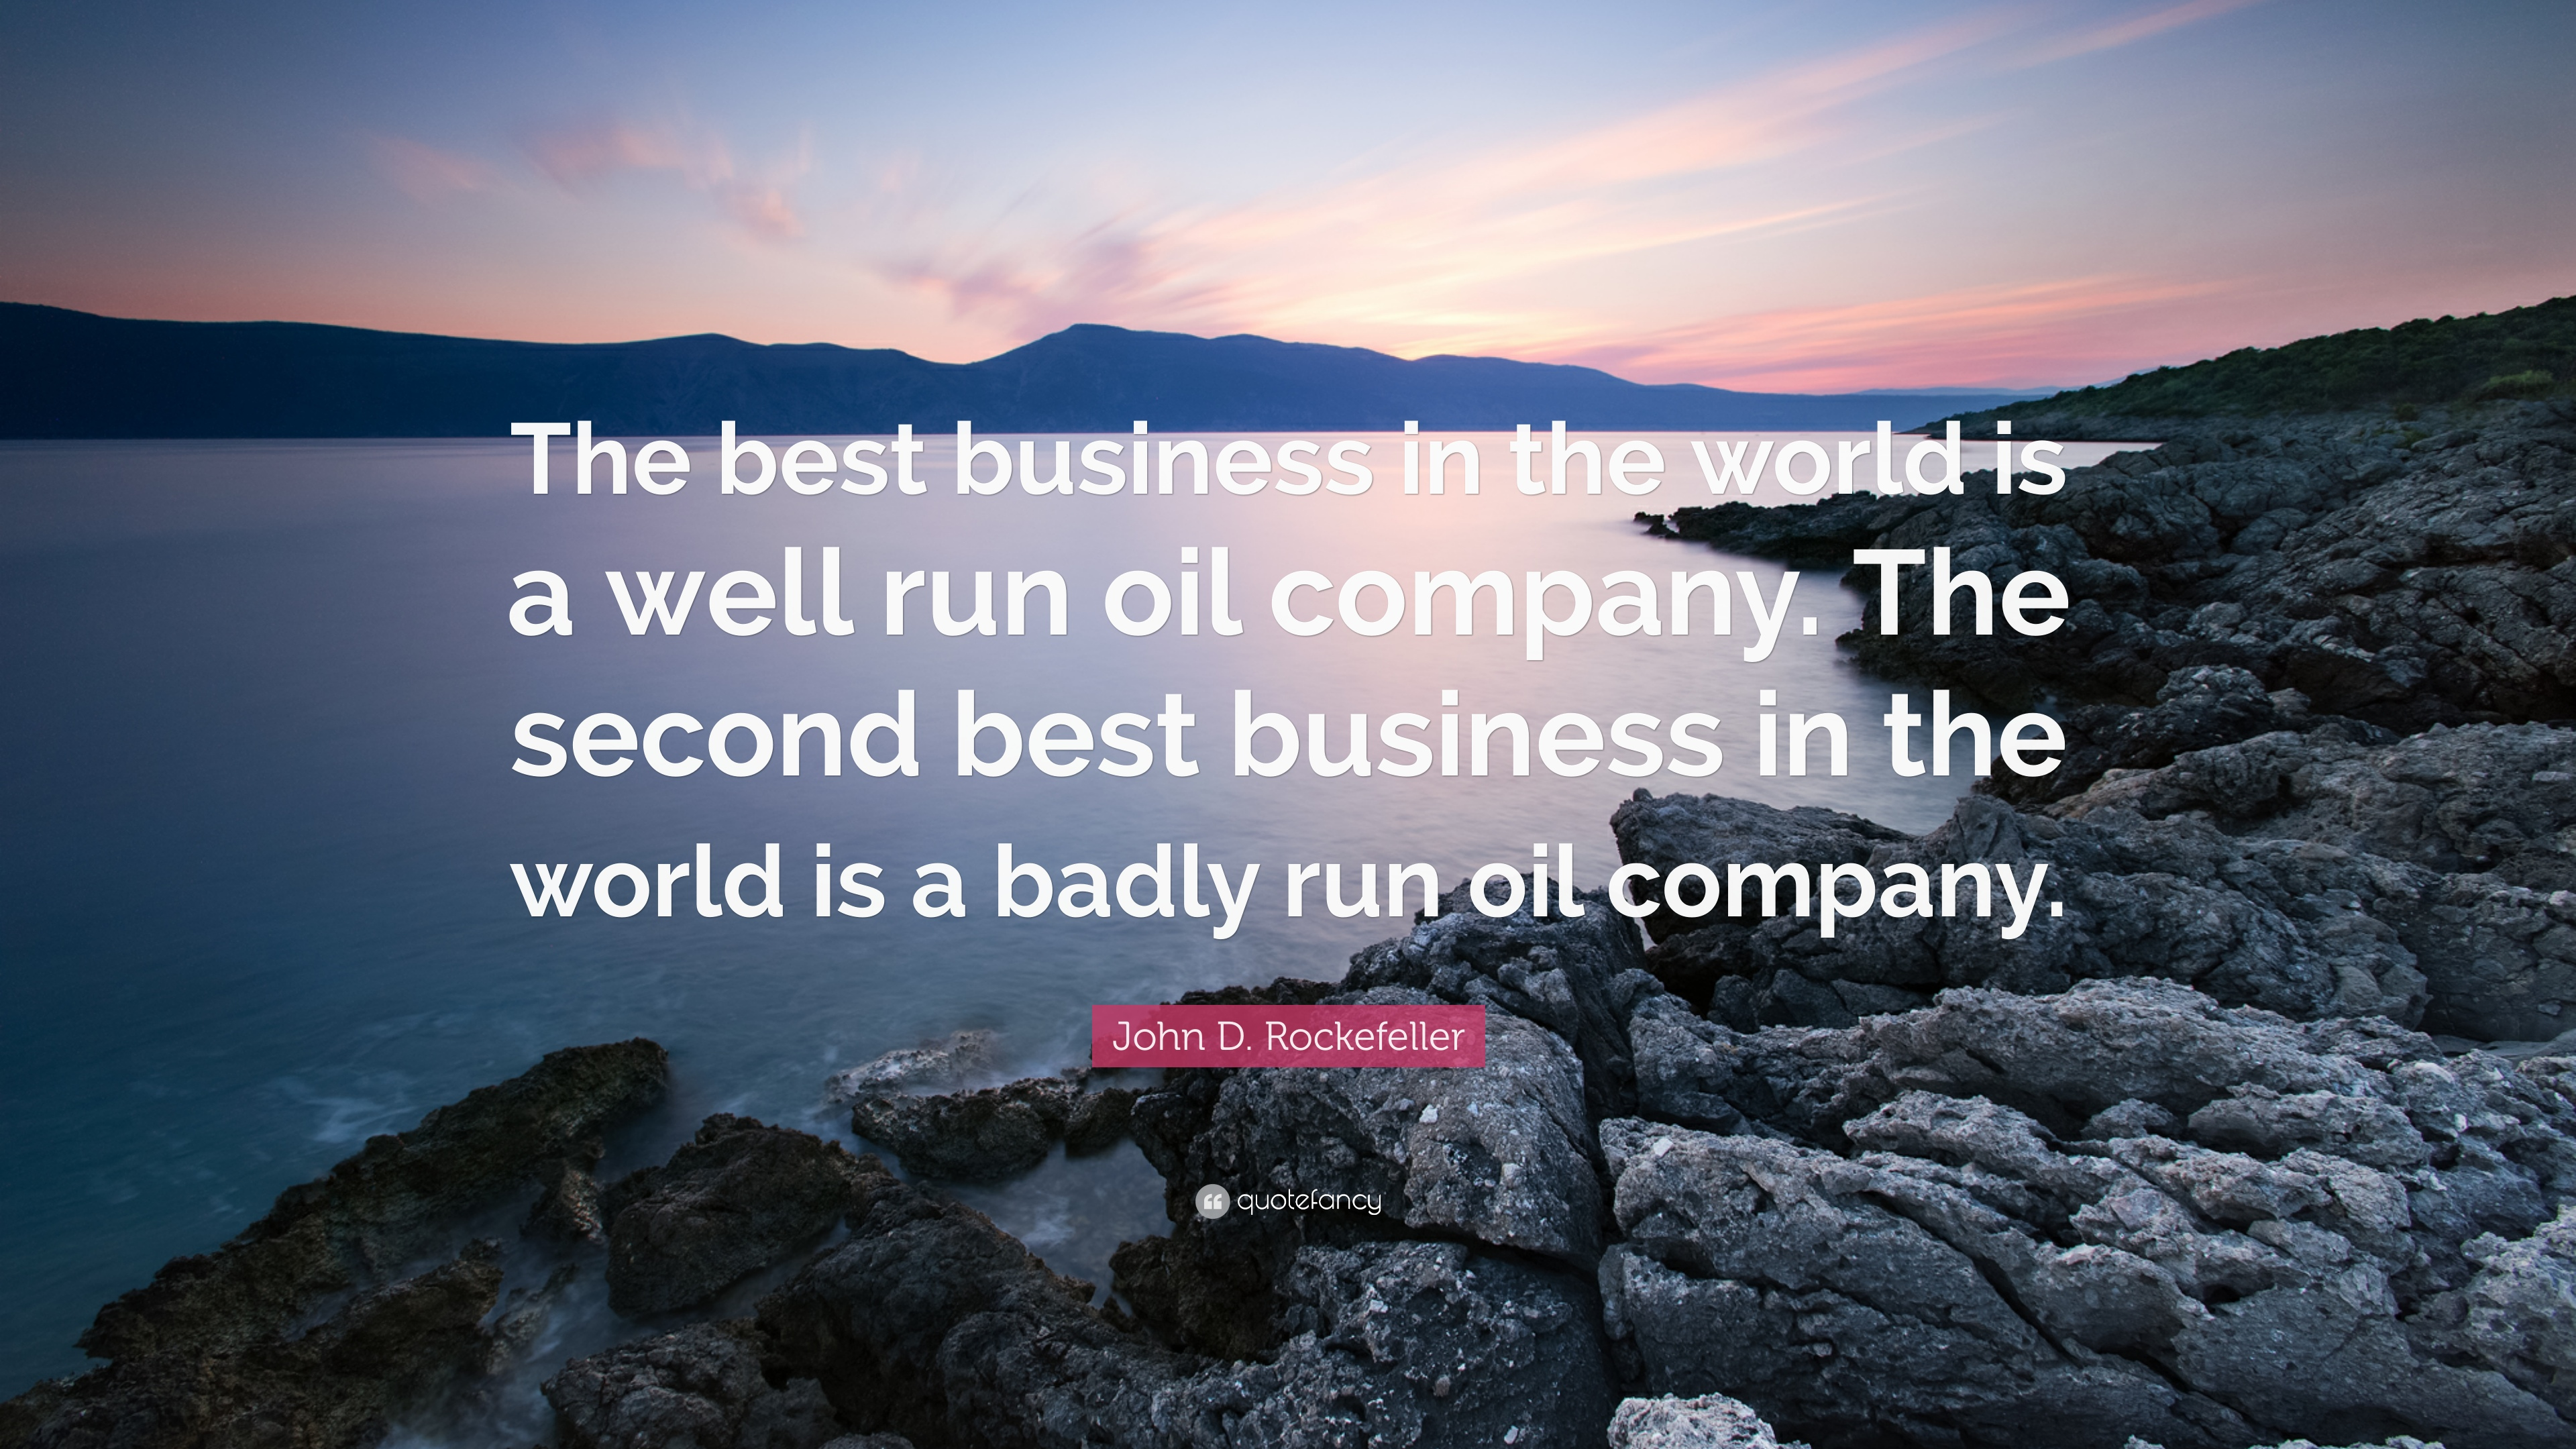 John D Rockefeller Quote The Best Business In The World Is A Well